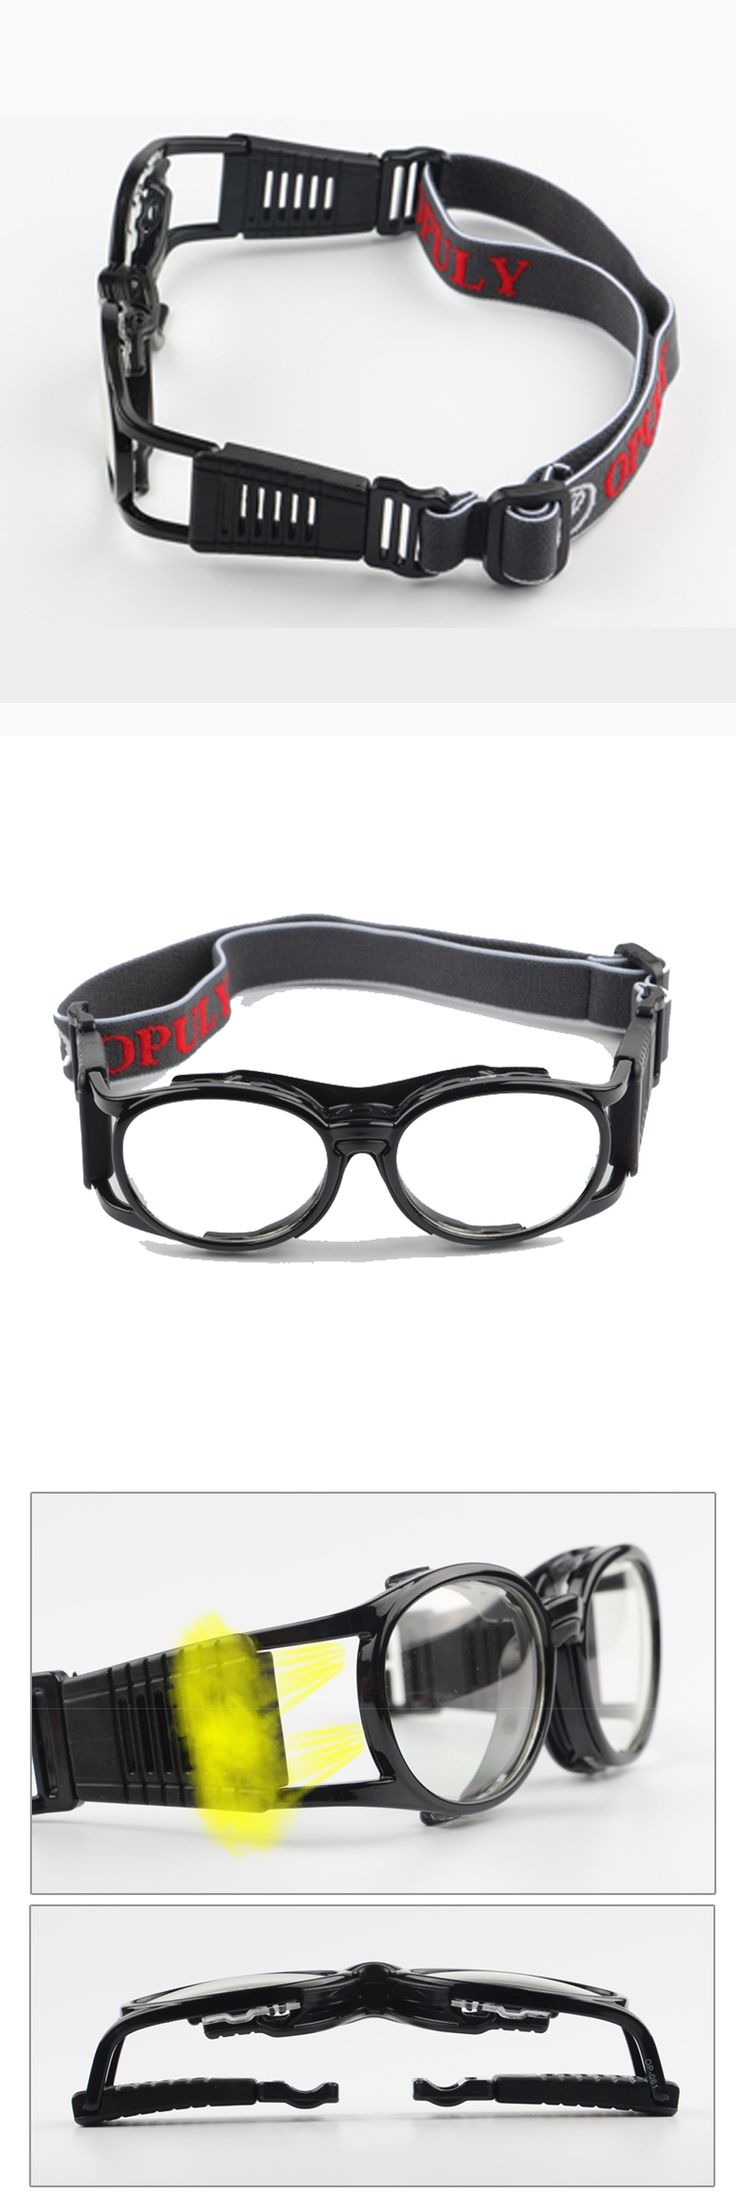 Retro Children Basketball Glasses Slimfit Lens Exchangeable Kids Protective Sports Eyeglasses Volleyball Football Safety Goggles